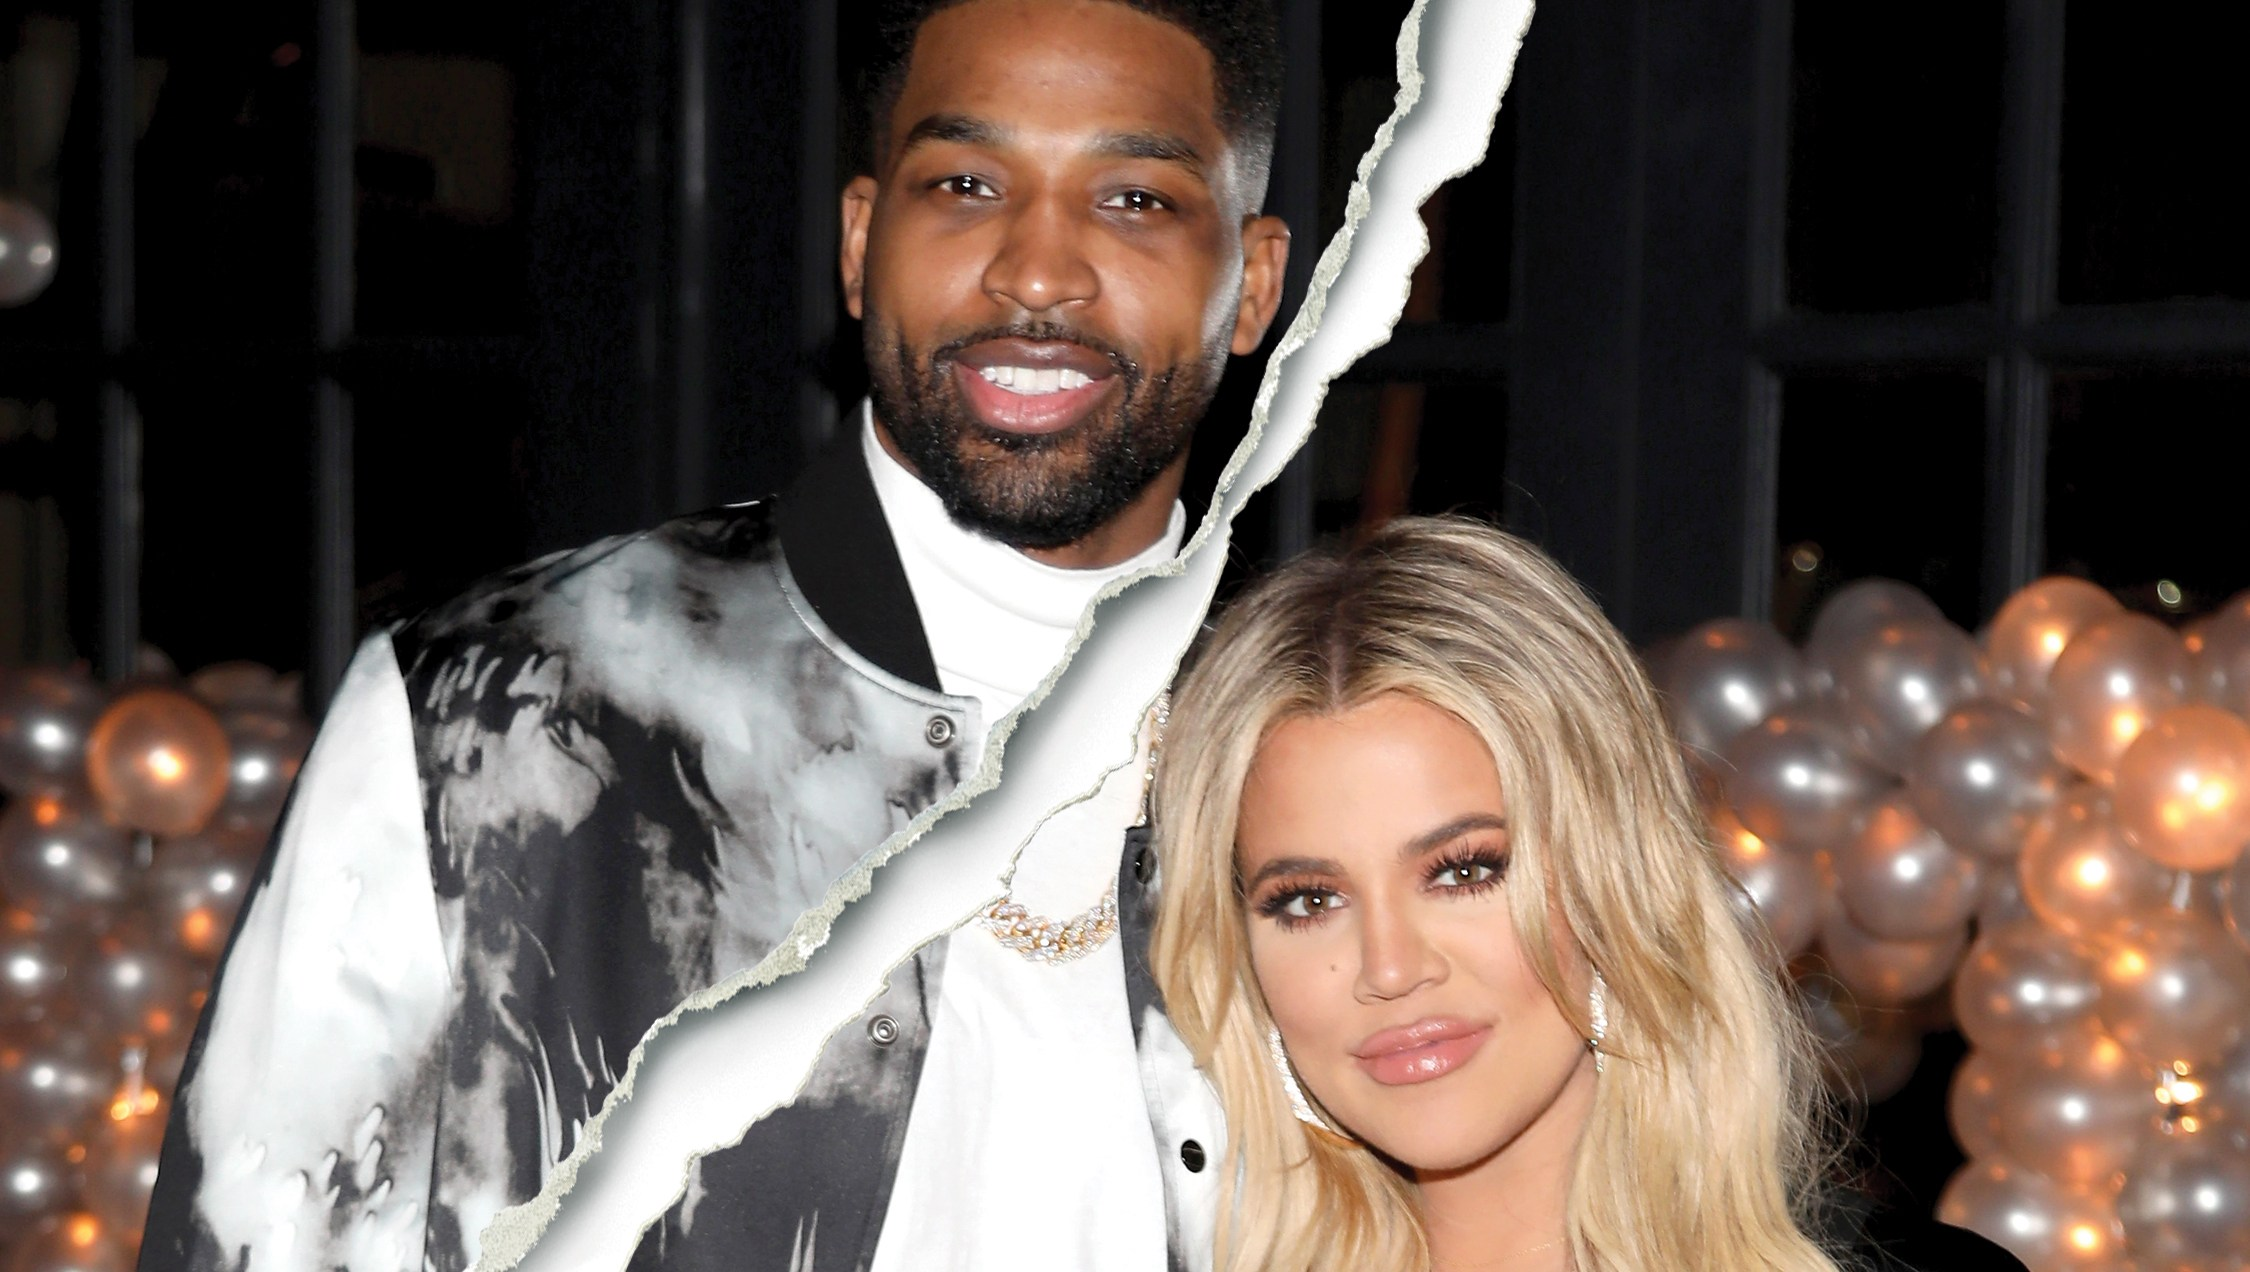 Tristan Thompson and Khloe Kardashian split